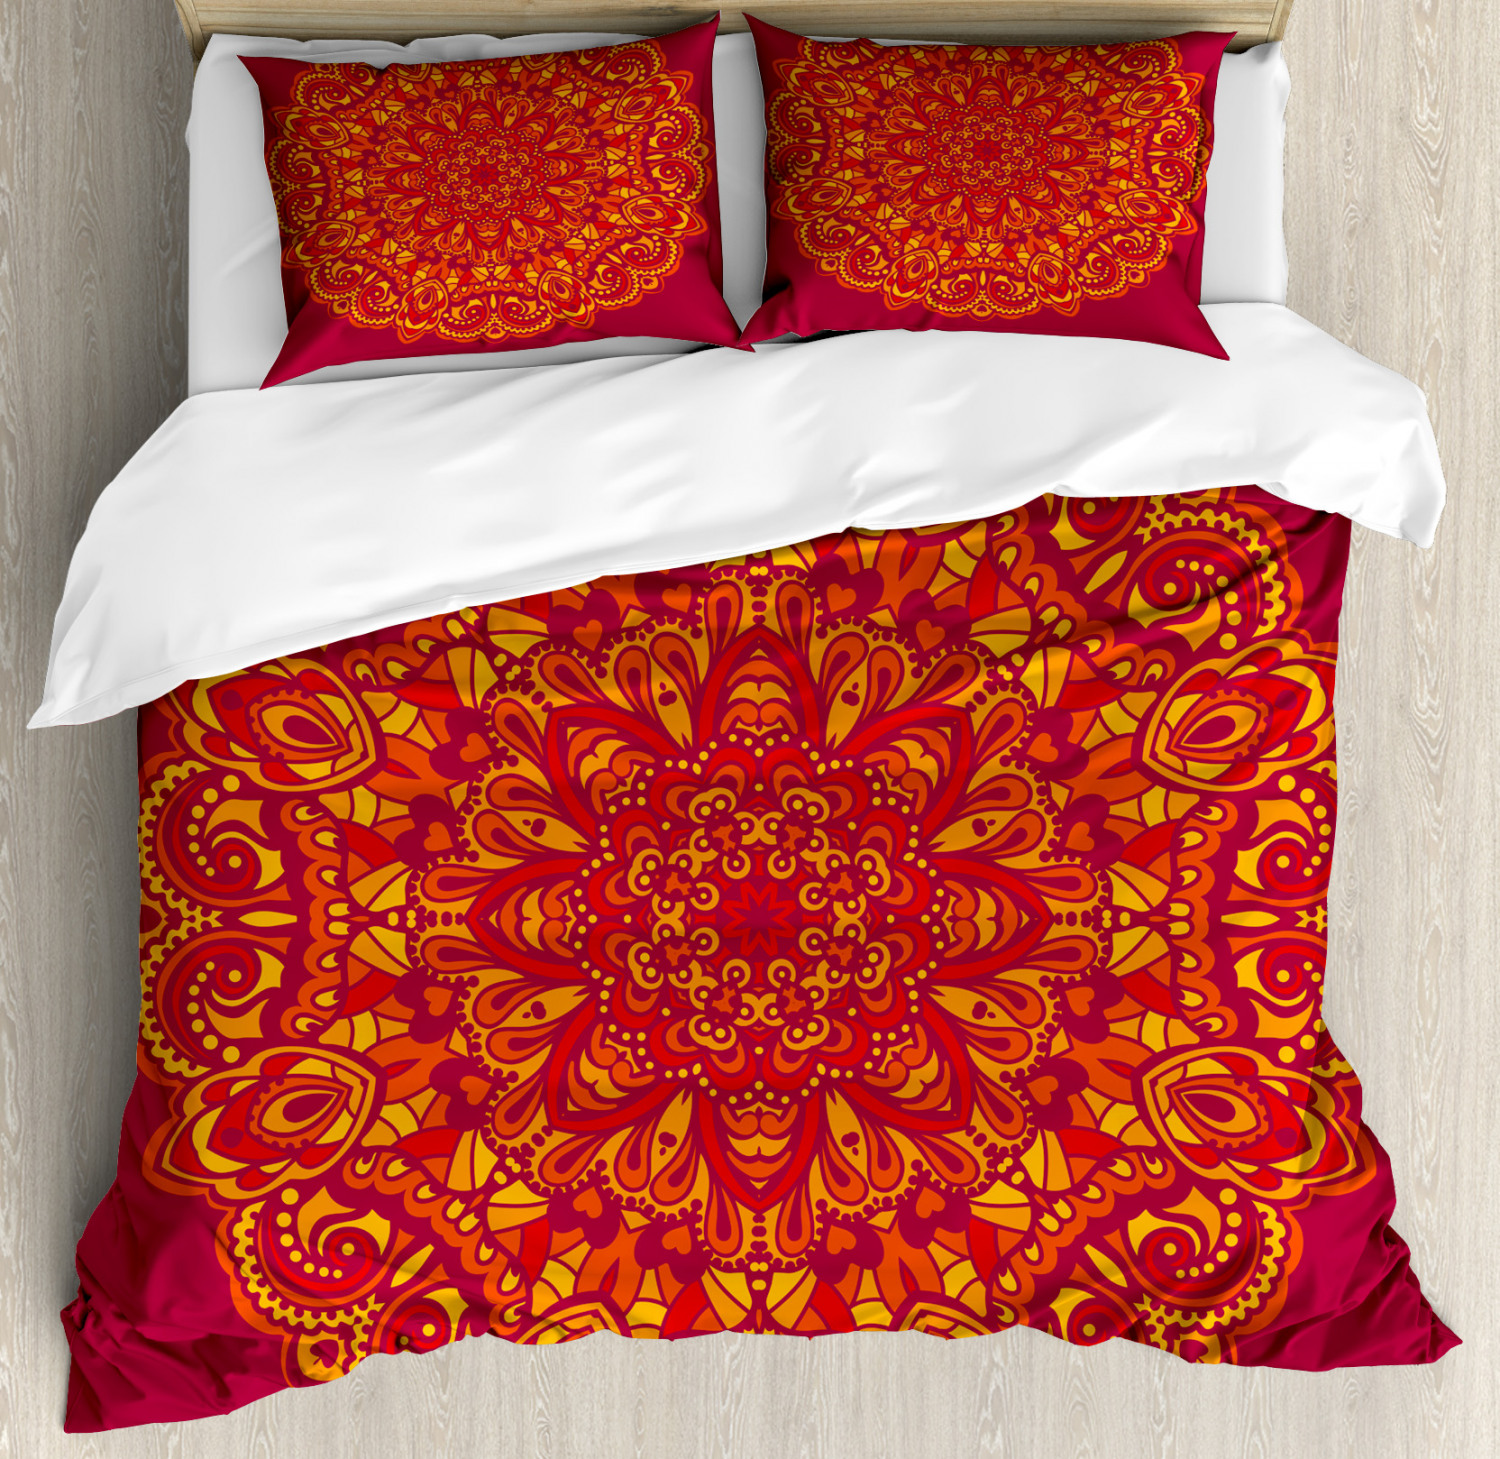 Red Mandala Duvet Cover Set with Pillow Shams Psychedelic Ancient Print